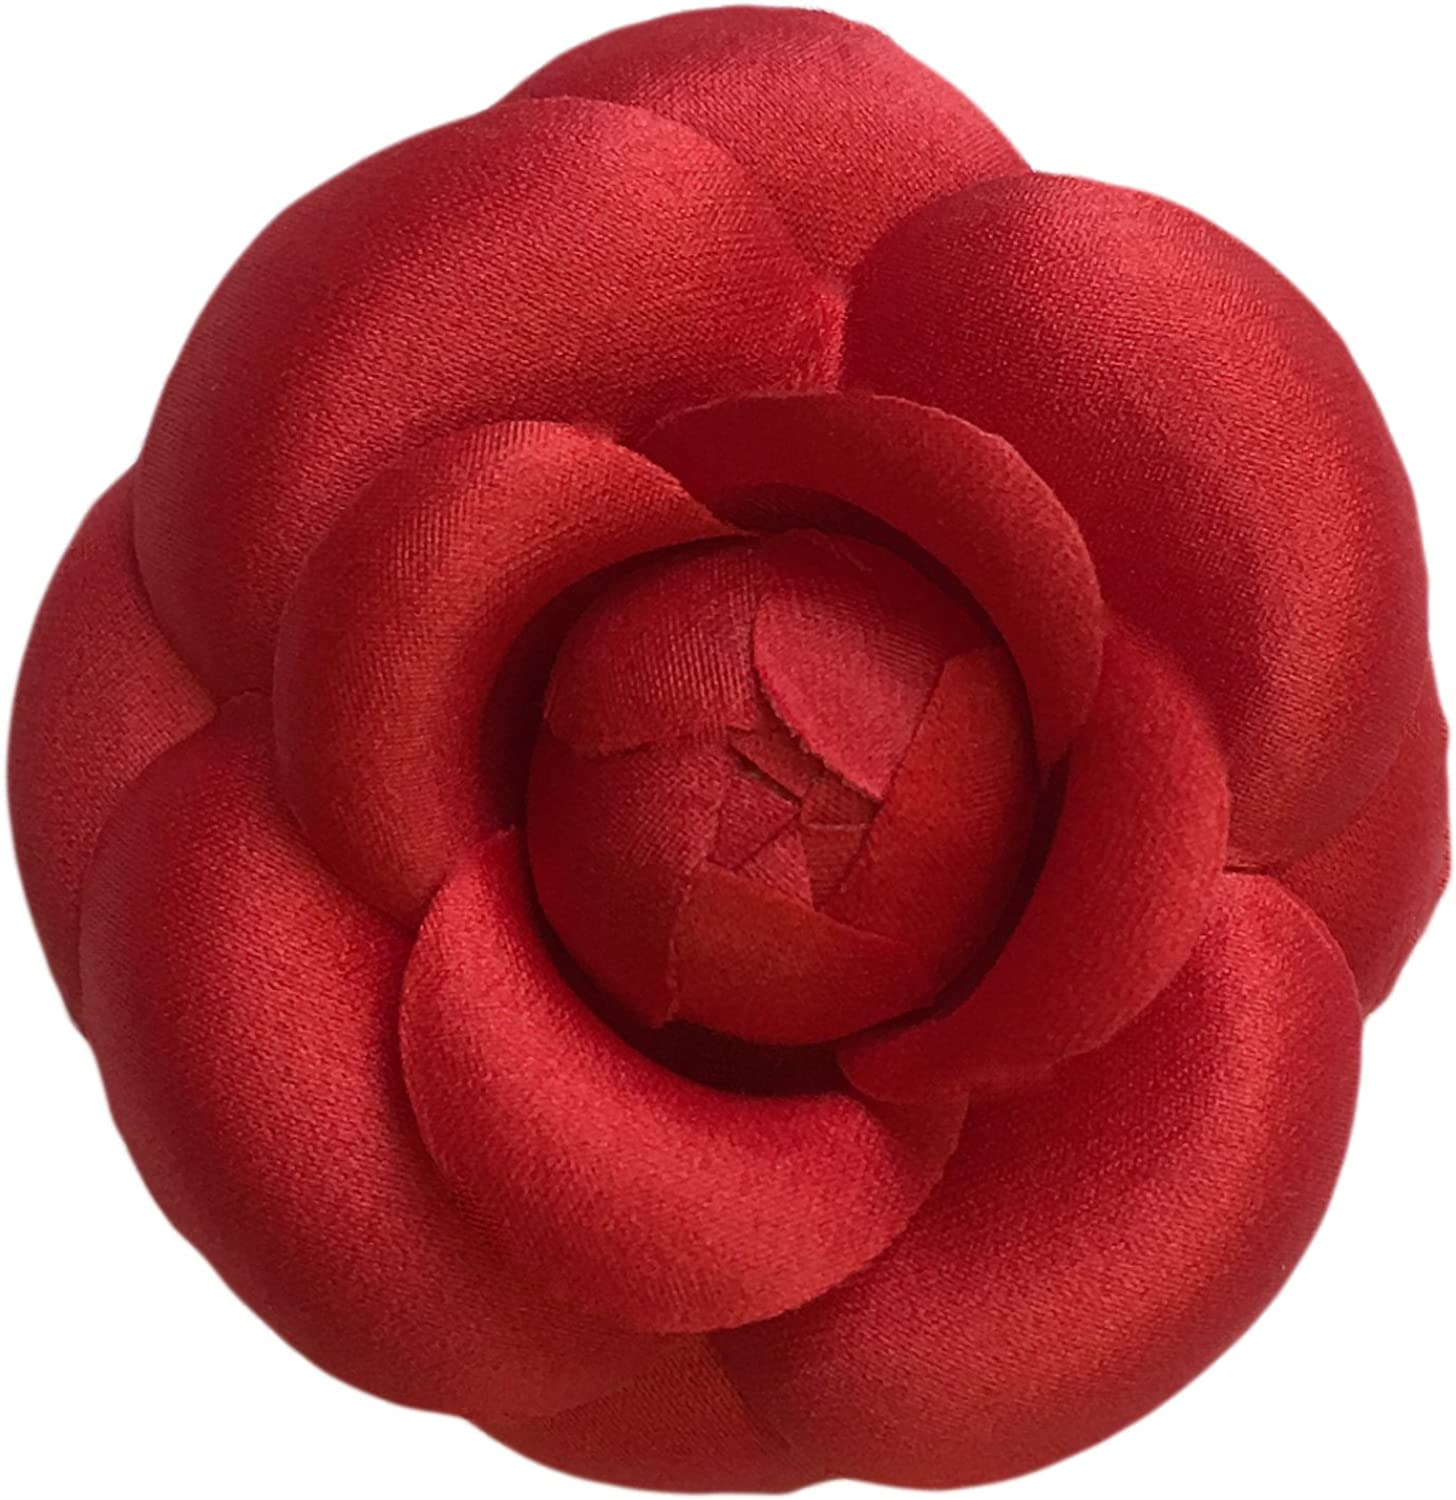 fabric brooch Camelia brooch Gift for Her flower for suit Gift for mom dress /& hat decoration popular bridesmaid gifts christmas gift